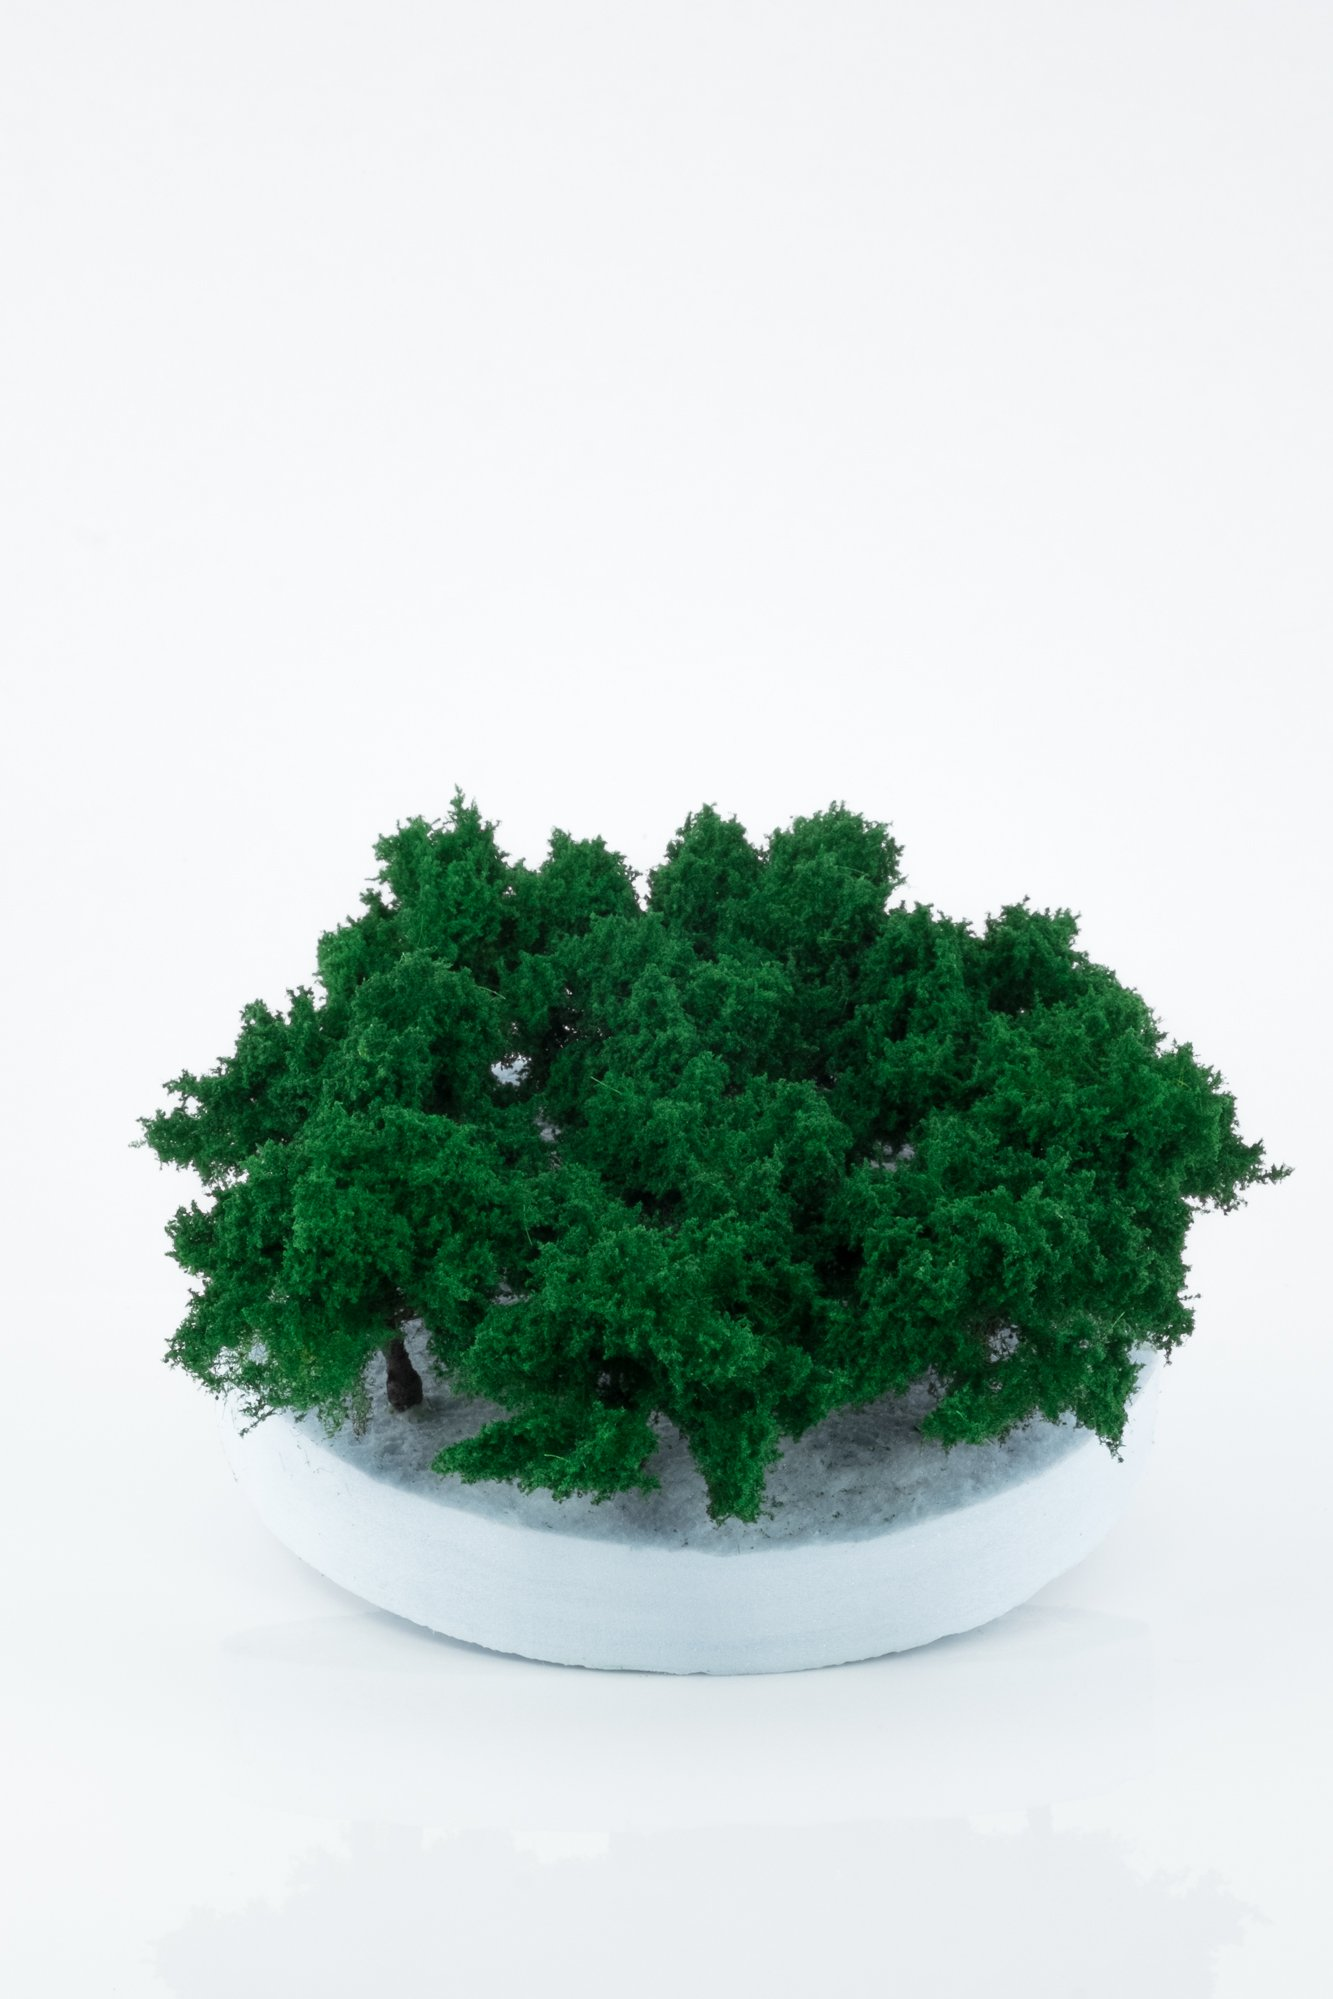 Ten pieces, regular dark green model bushes. Size between 2 and 4 cm. Made from high quality model supplies by Primo Models.